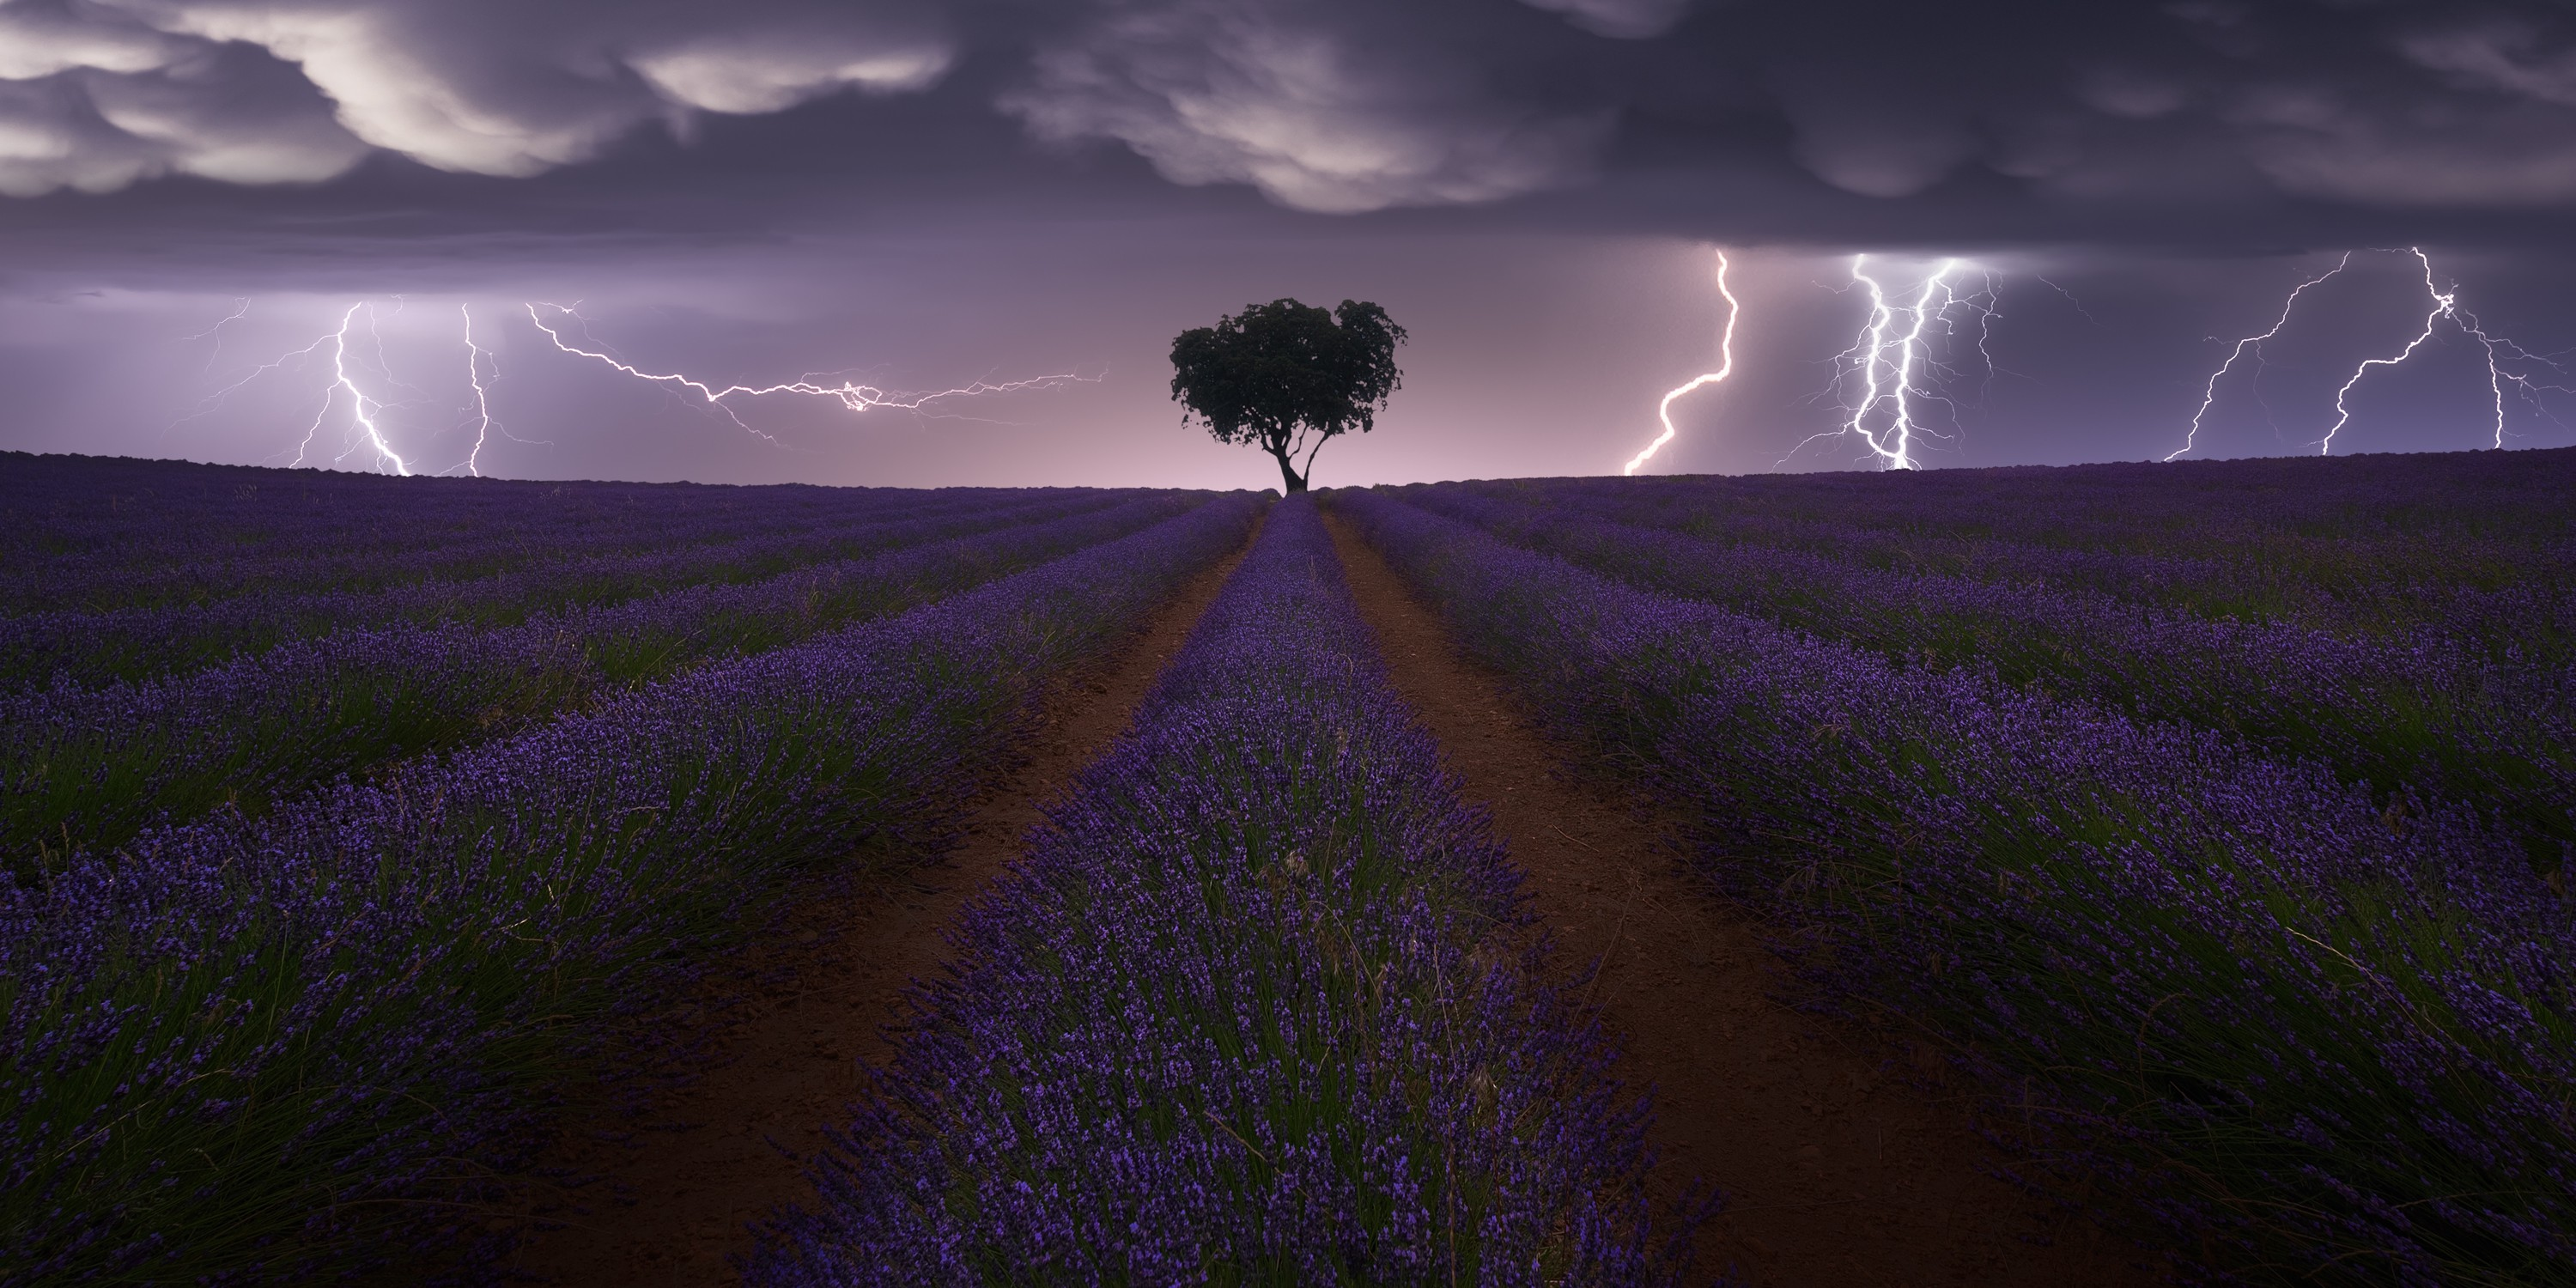 Lightning striking near a field of purple plants with a single tree sillouhetted by the purple sky